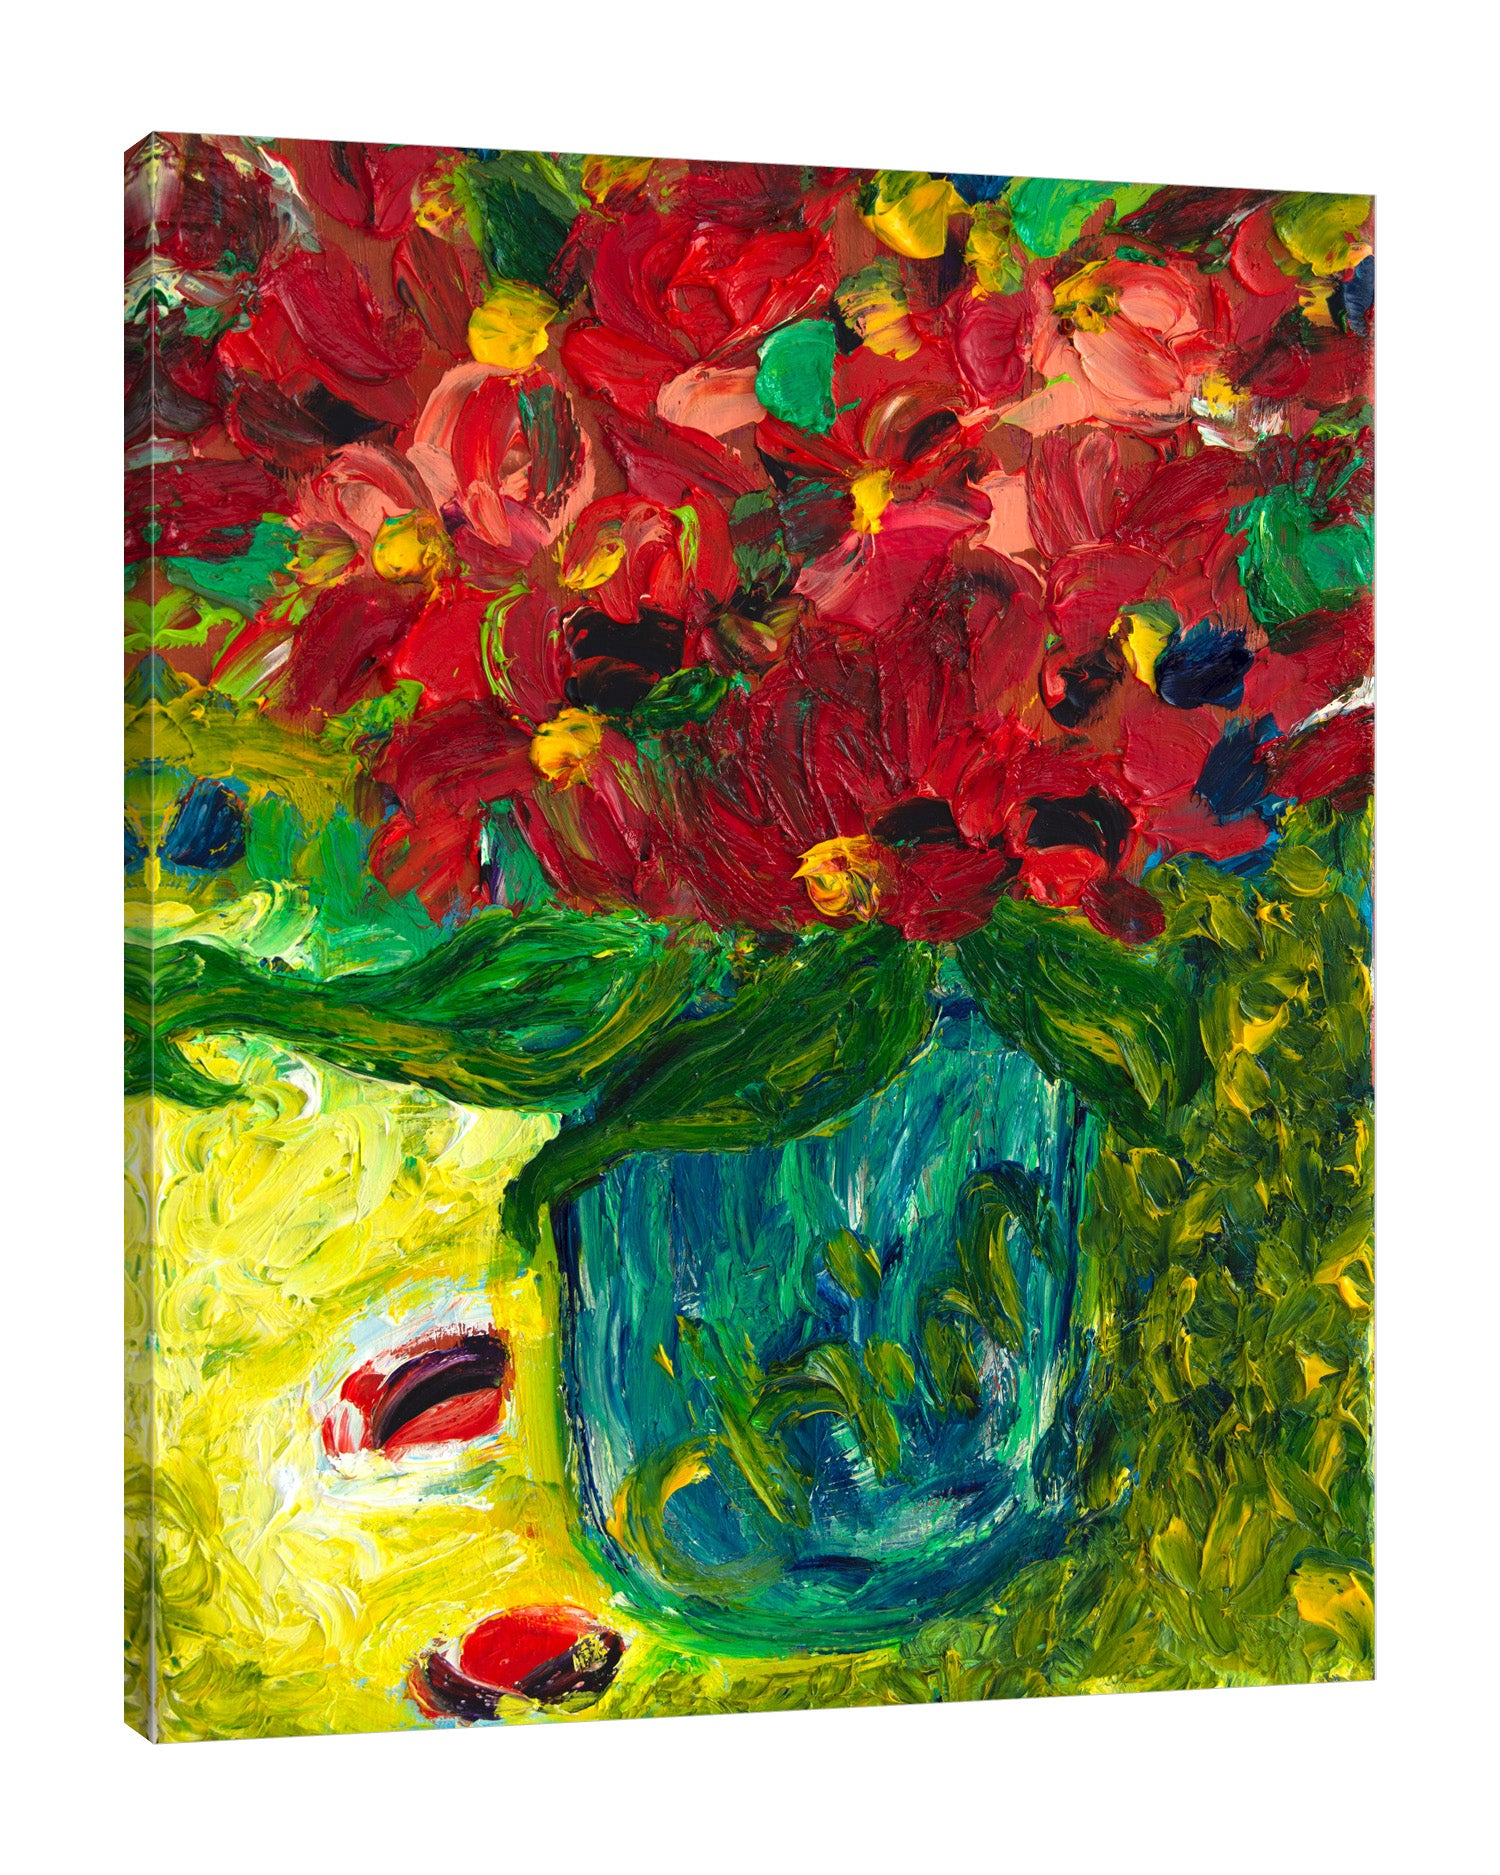 Chiara-Magni,Modern & Contemporary,Floral & Botanical,Finger-paint,florals,floral,flowers,flower,petals,leaves,yellow,bouquets,vases,petals,green,red,